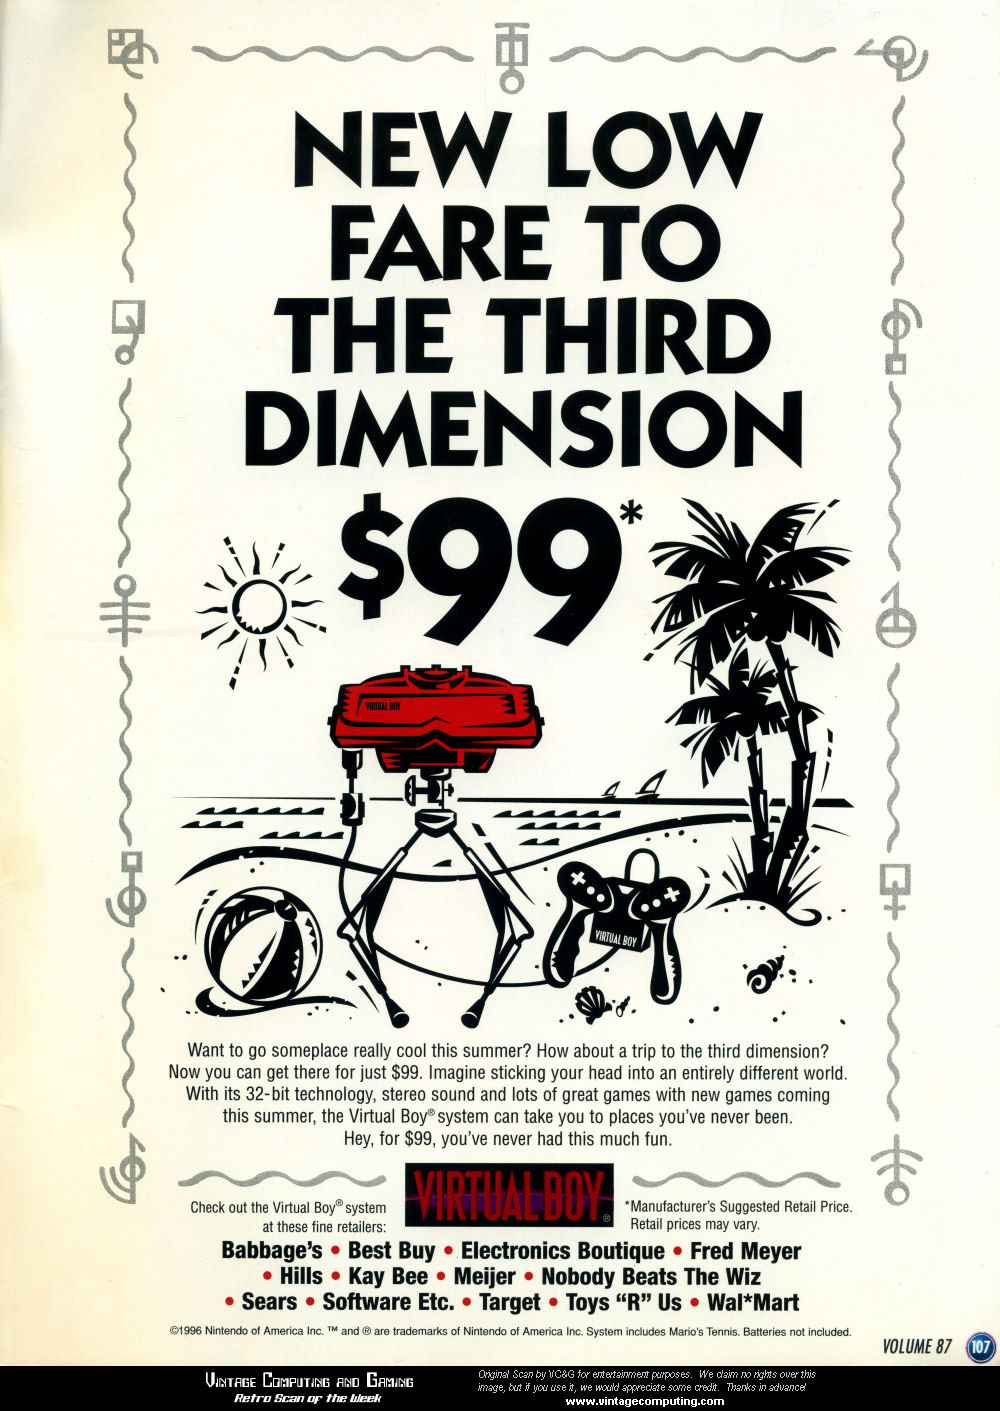 A familiar chapter in the story of so many failed gaming ideas, not even heavy price cuts could wash the bitter taste from consumers' palates when it came to the Virtual Boy. Credit to www.vintagecomputing.com for the high quality scan. Every other one was tiny!